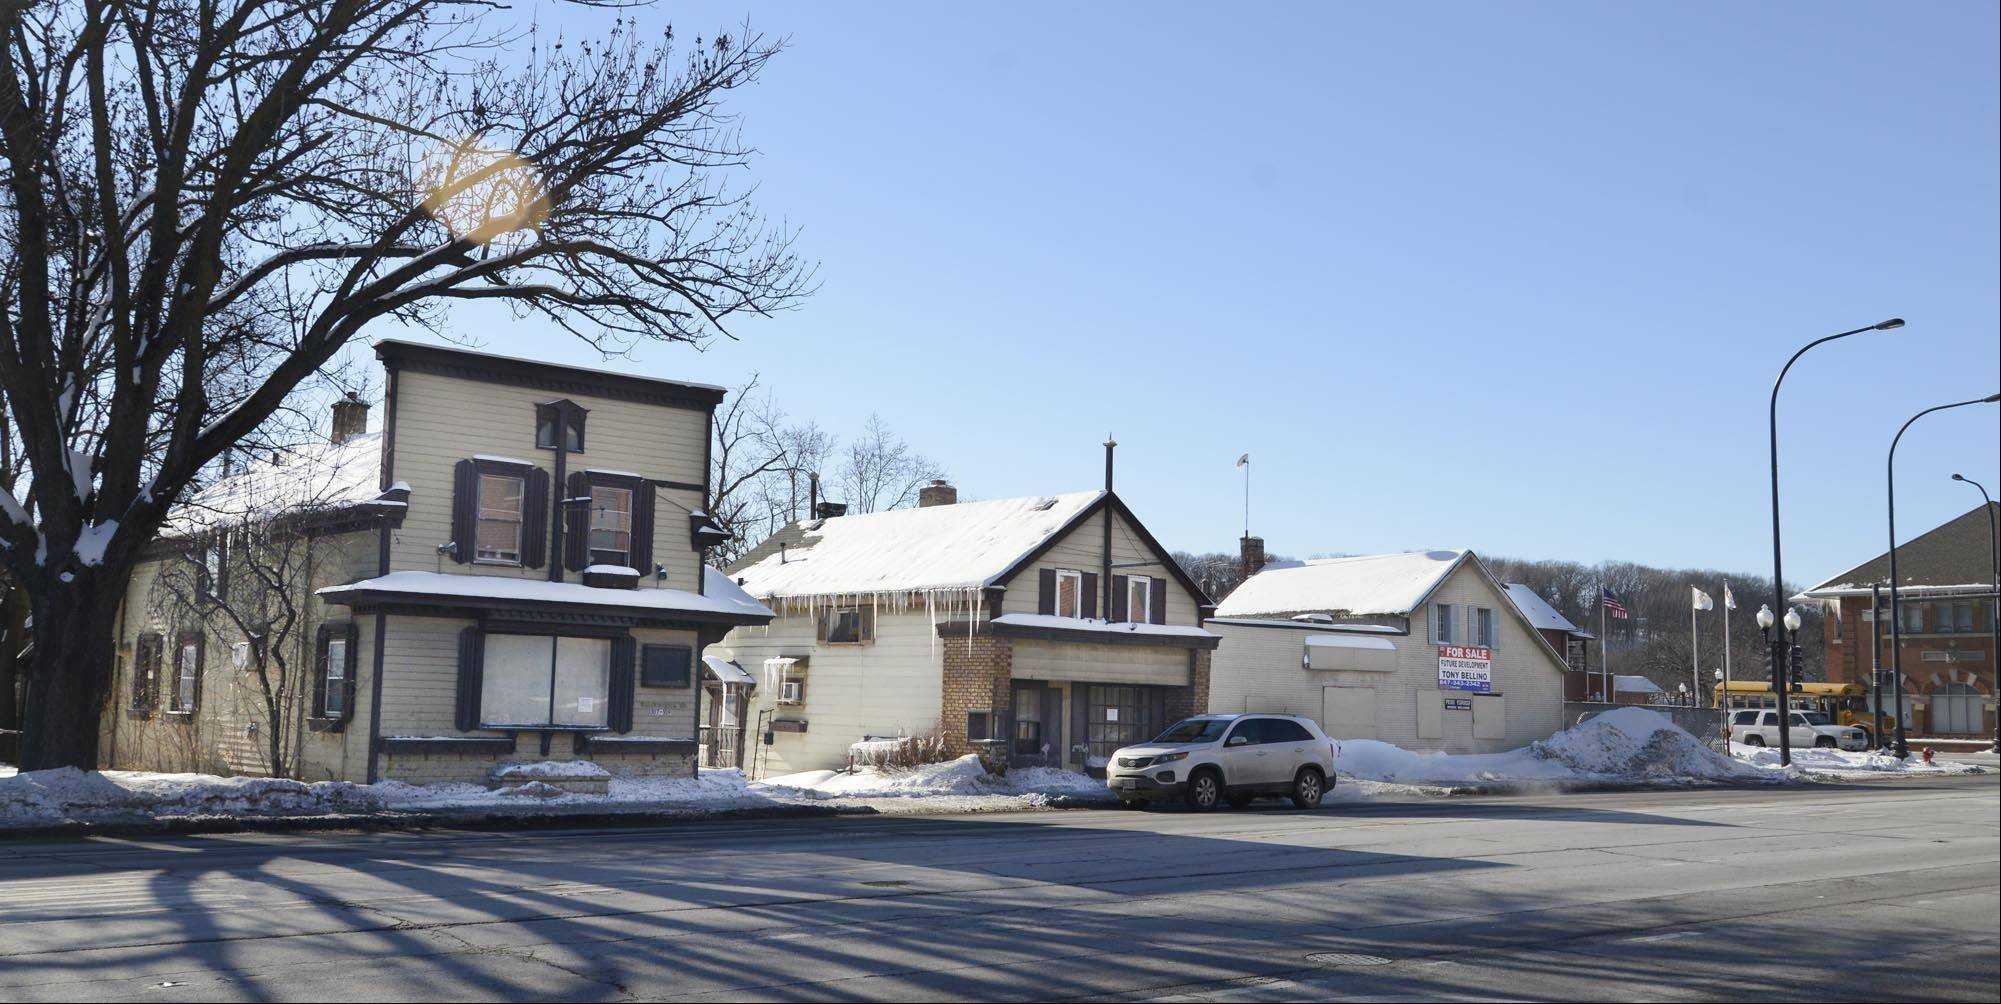 Three historic buildings on West Algonquin Road in Algonquin will be demolished within the next six months. They are part of the original business district and are in severe disrepair, documents show.